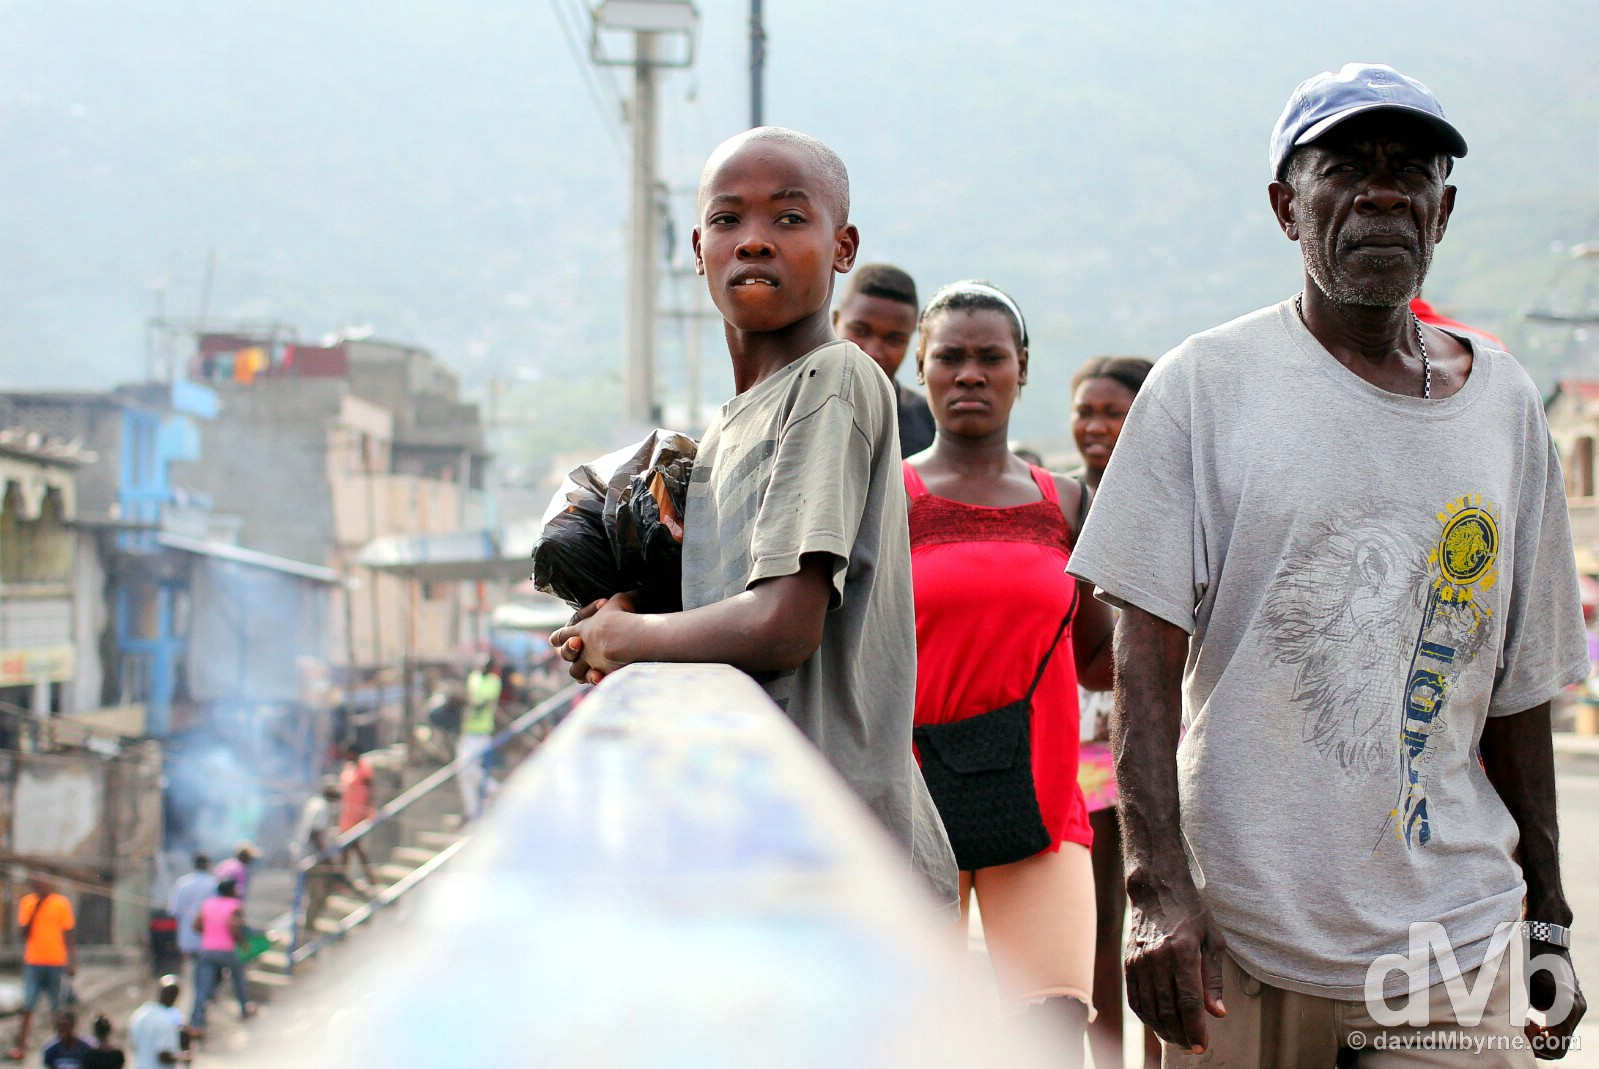 On the streets of Cap-Haïtien, northern Haiti, Hispaniola, Greater Antilles. May 22, 2015.